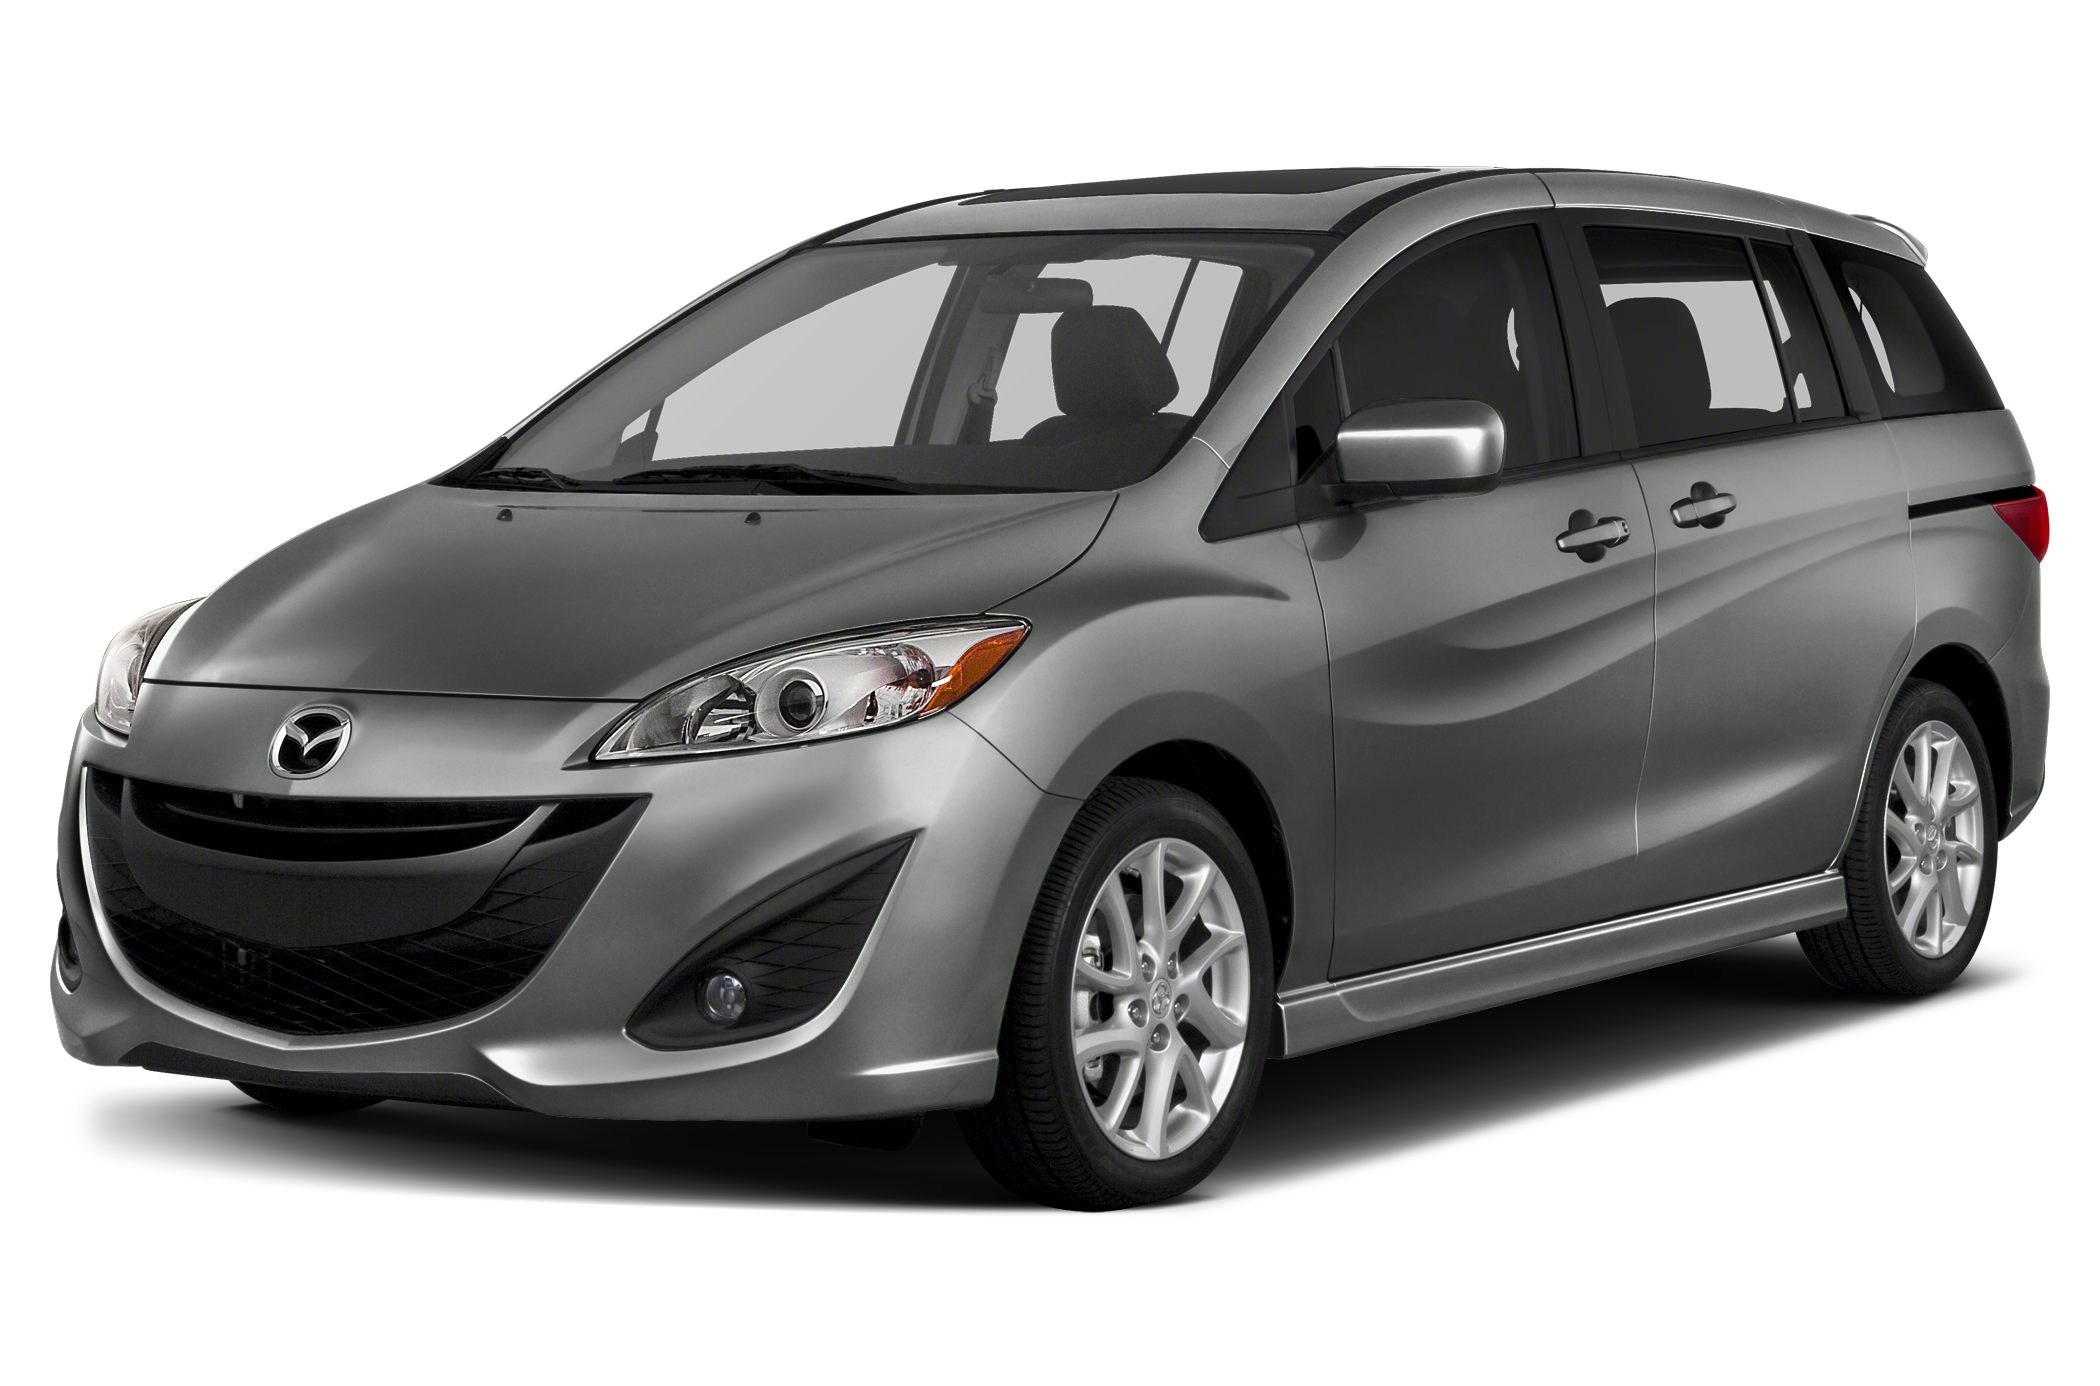 2015 Mazda Mazda5 Grand Touring Wagon for sale in Wakefield for $25,590 with 10 miles.